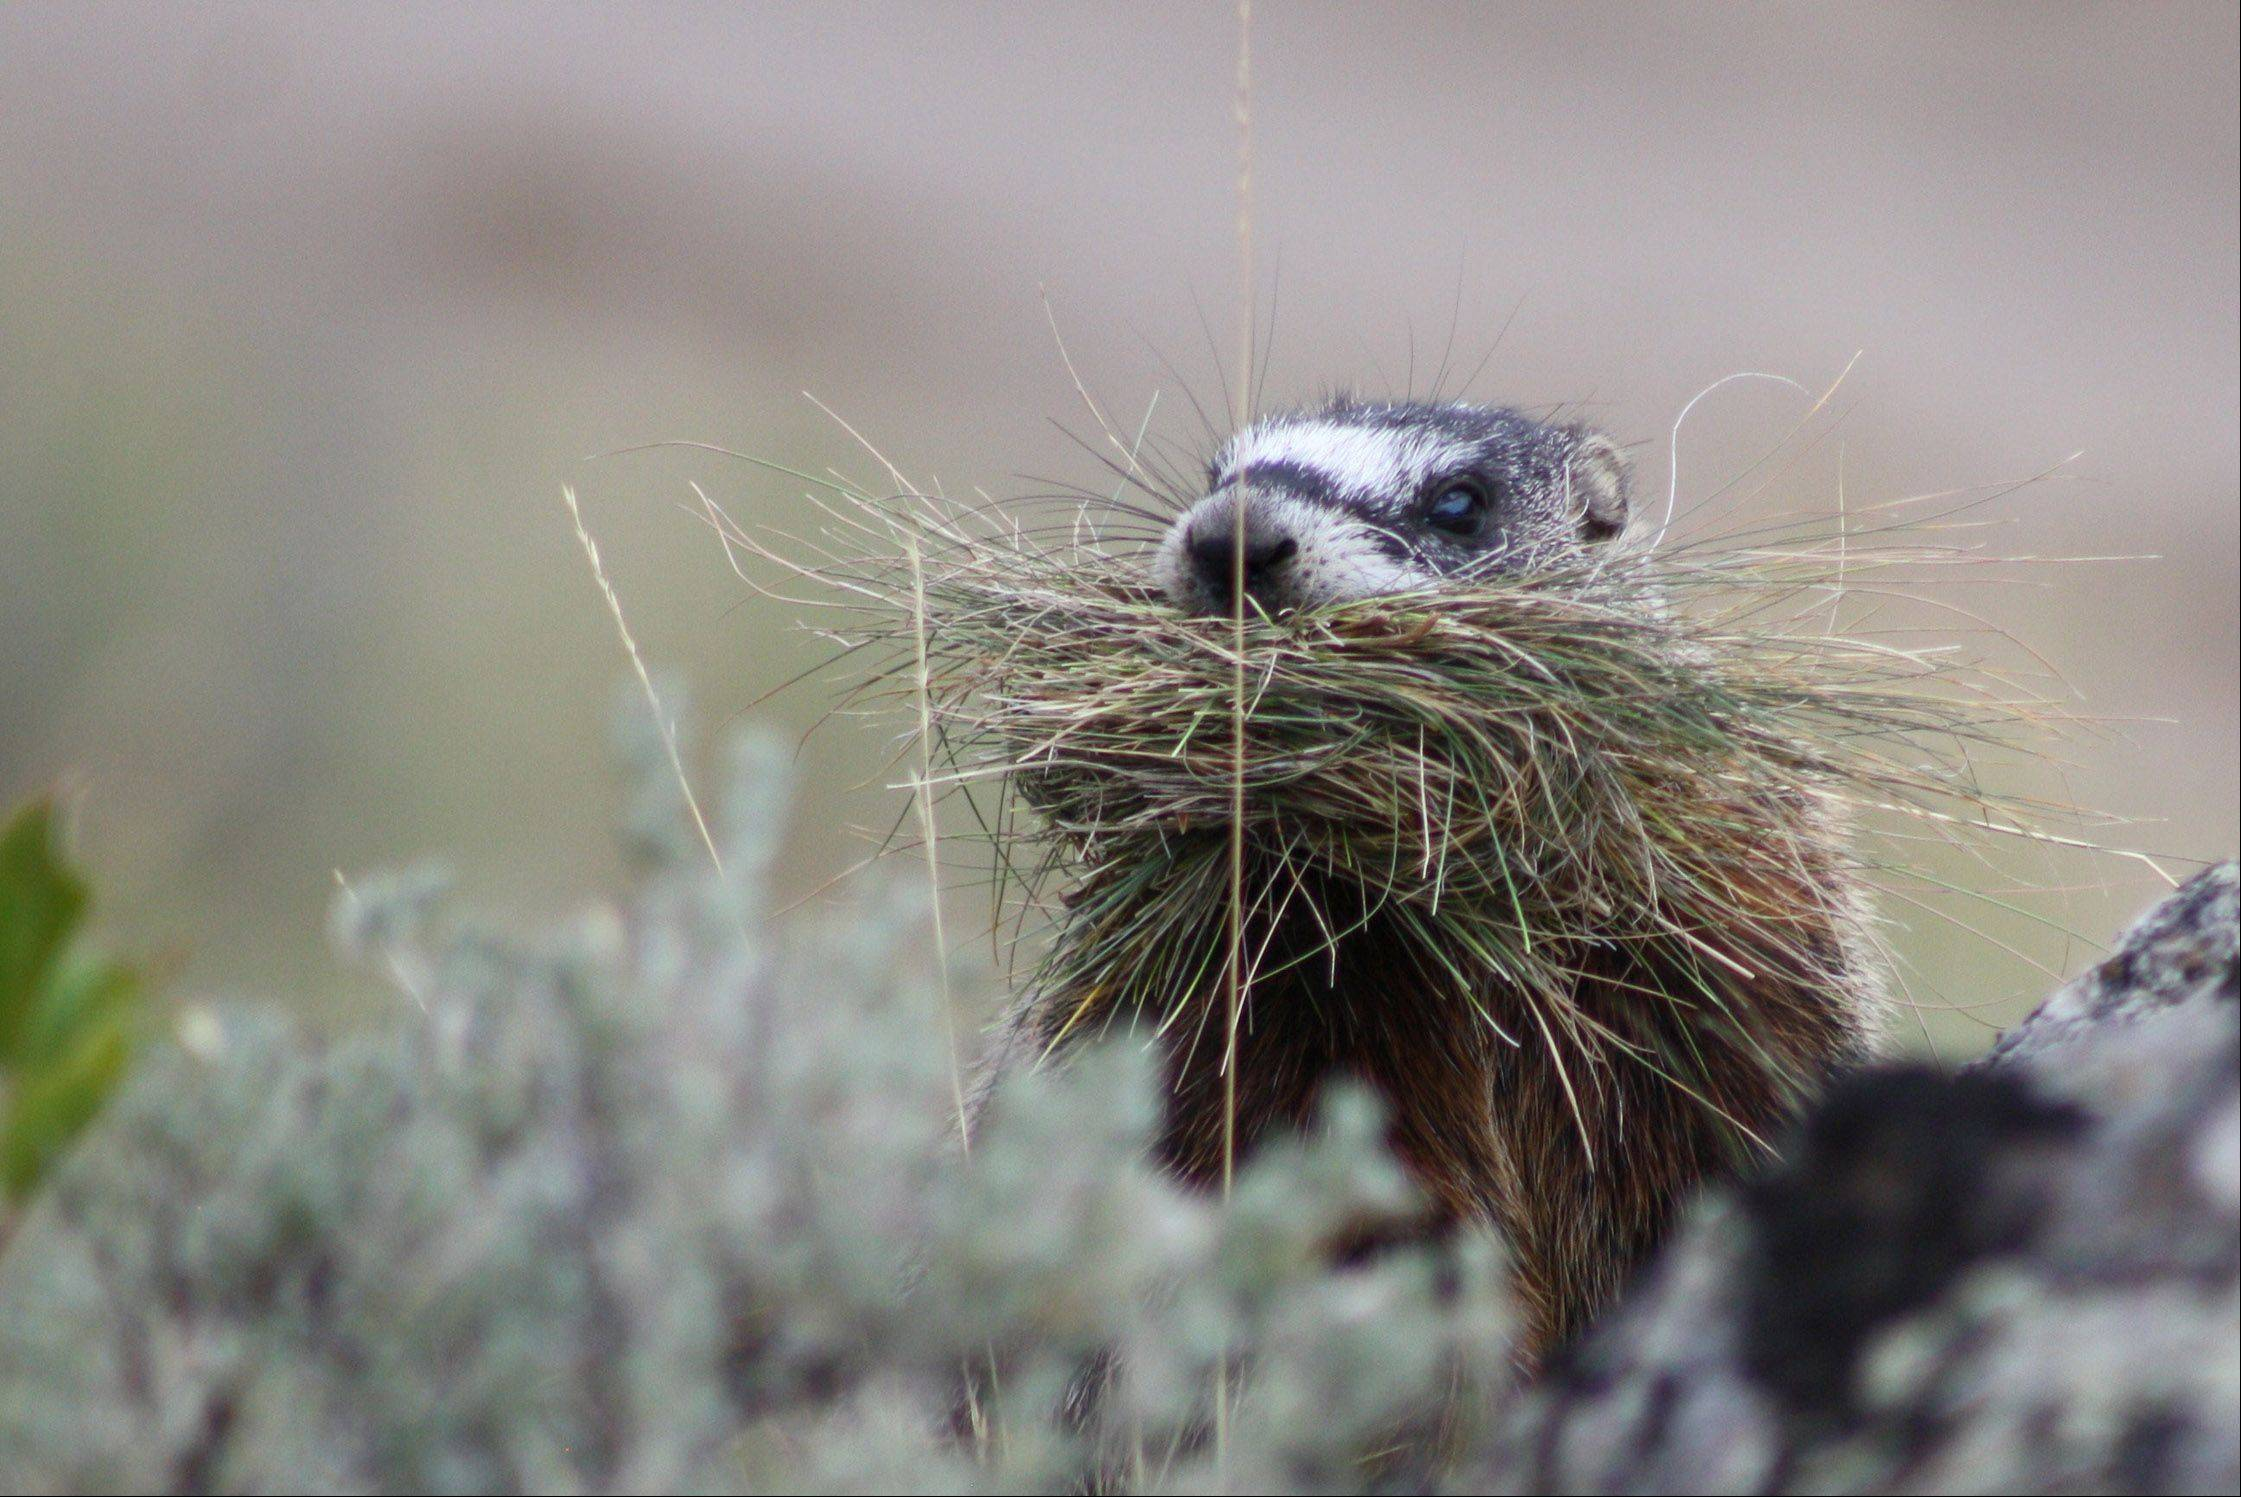 A marmot builds a nest in Yellowstone National Park in Wyoming.